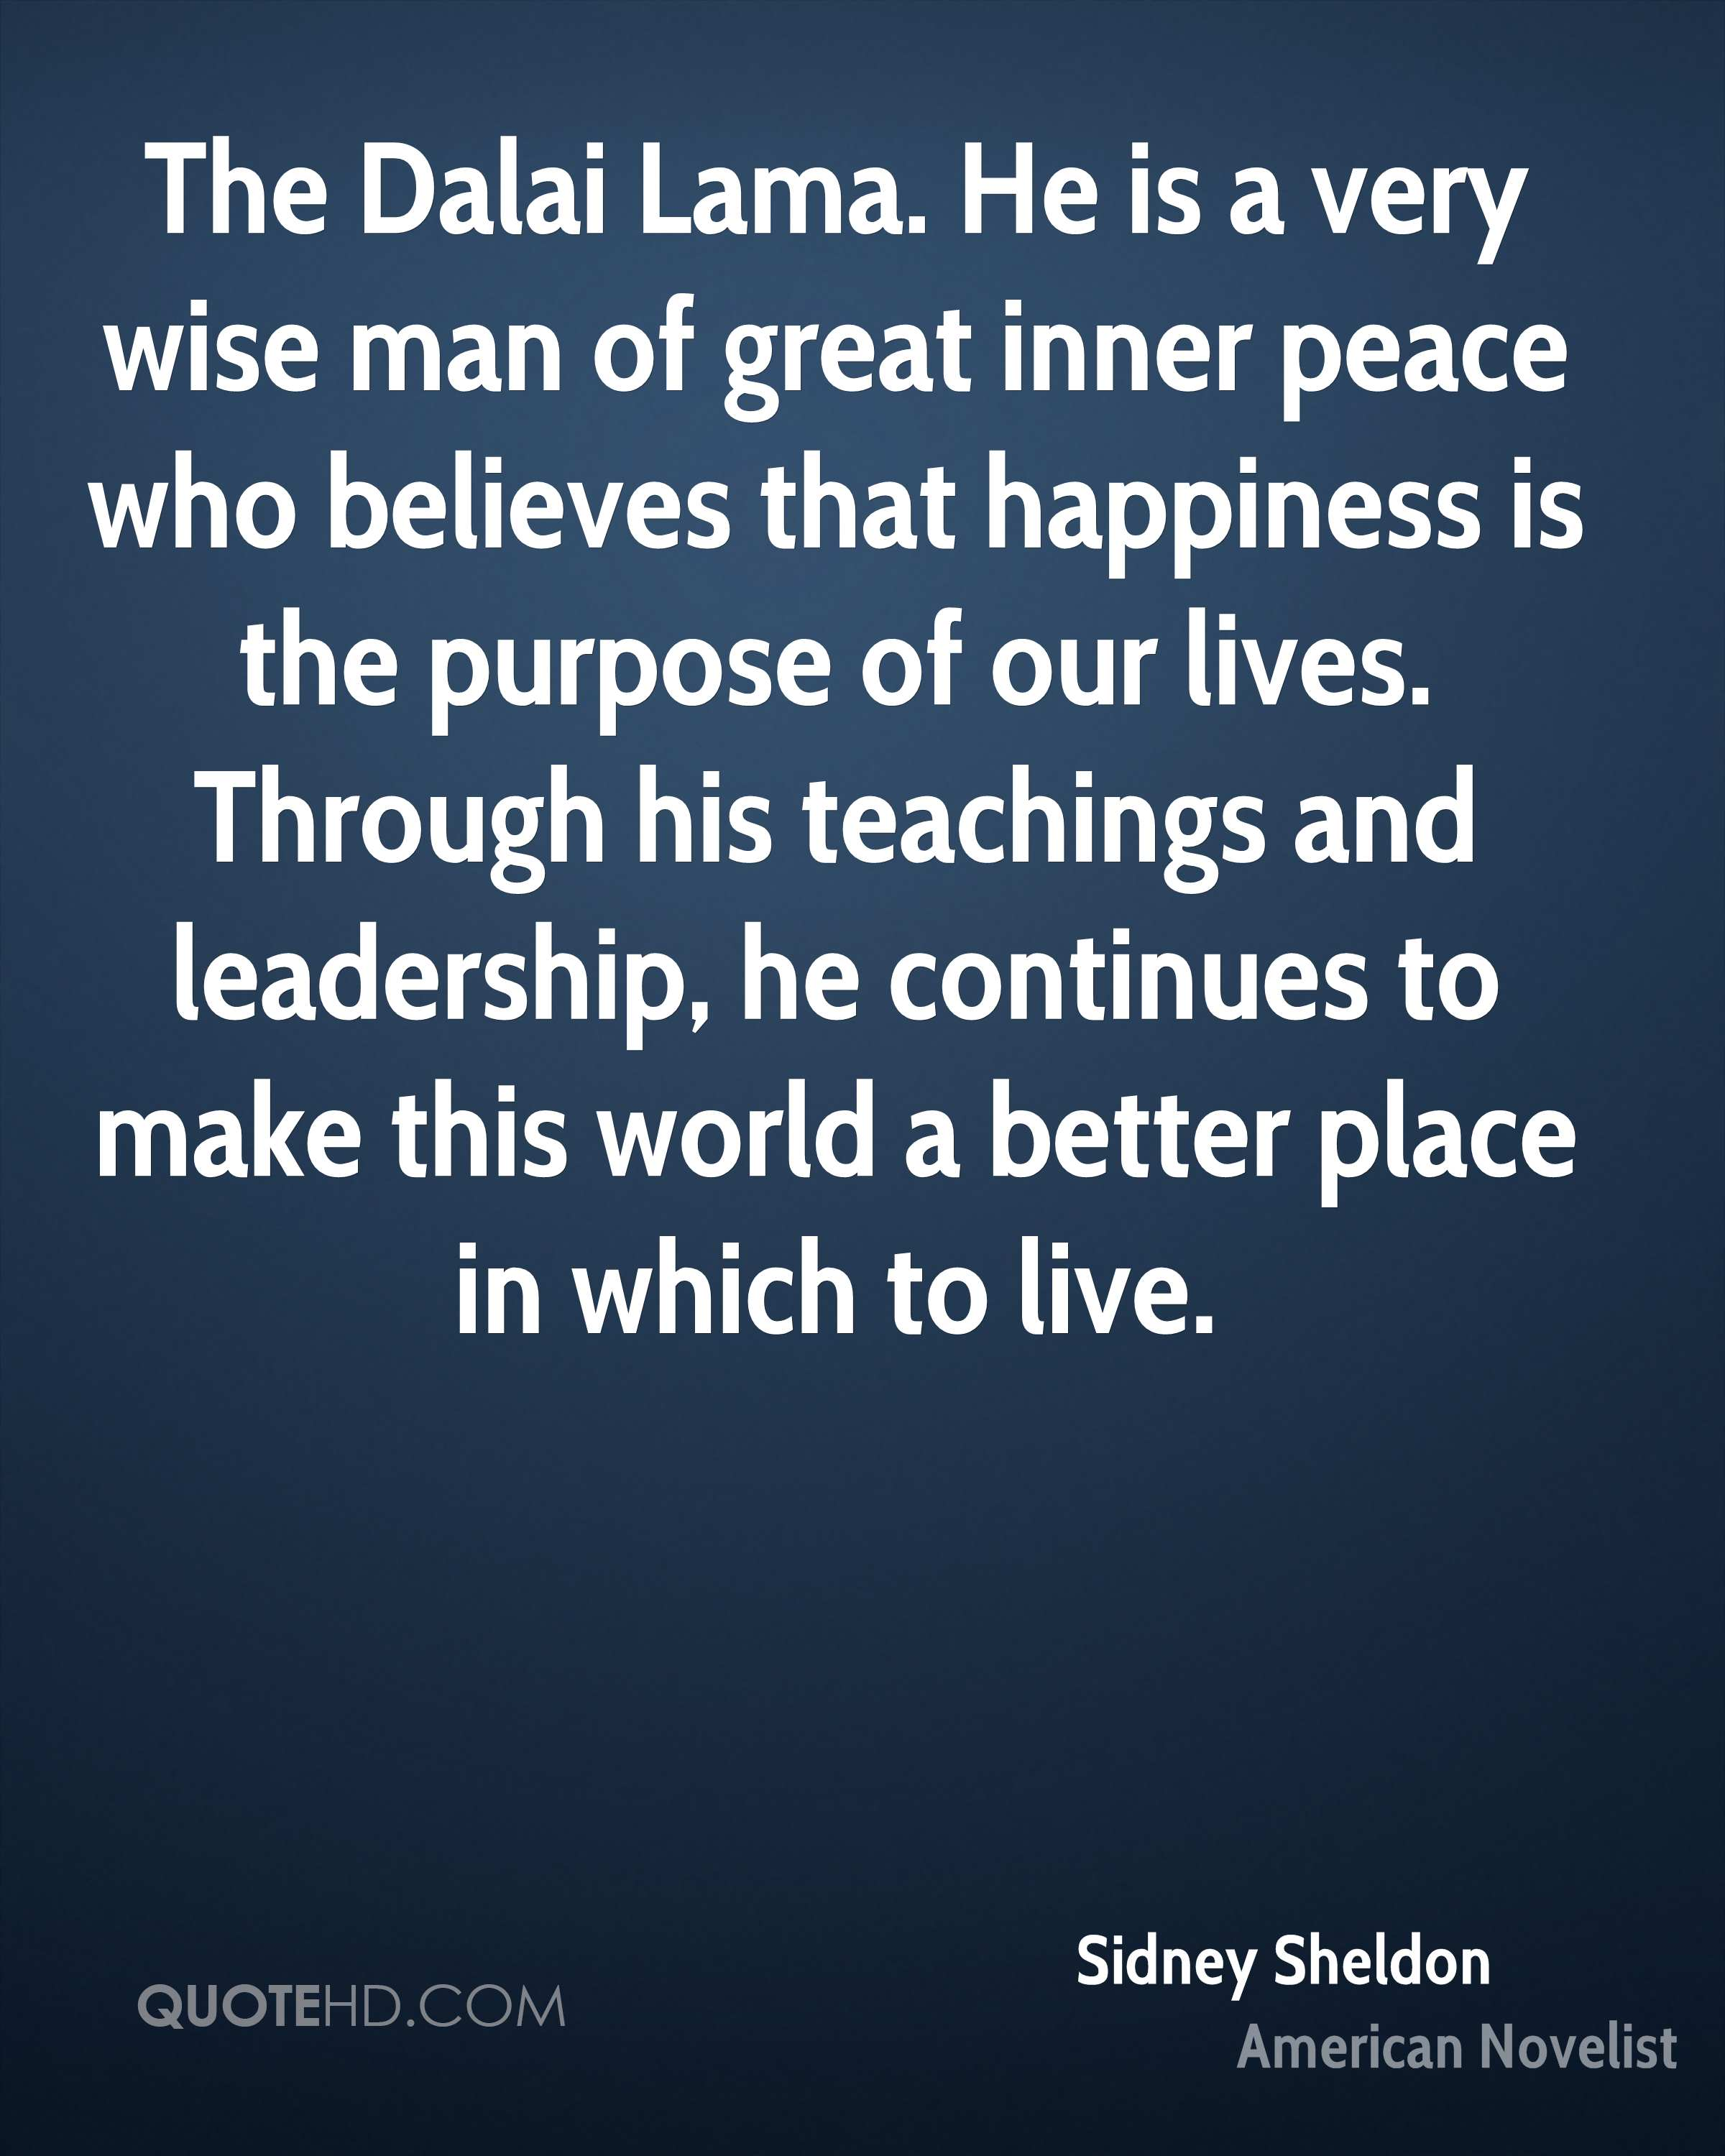 The Dalai Lama. He is a very wise man of great inner peace who believes that happiness is the purpose of our lives. Through his teachings and leadership, he continues to make this world a better place in which to live.